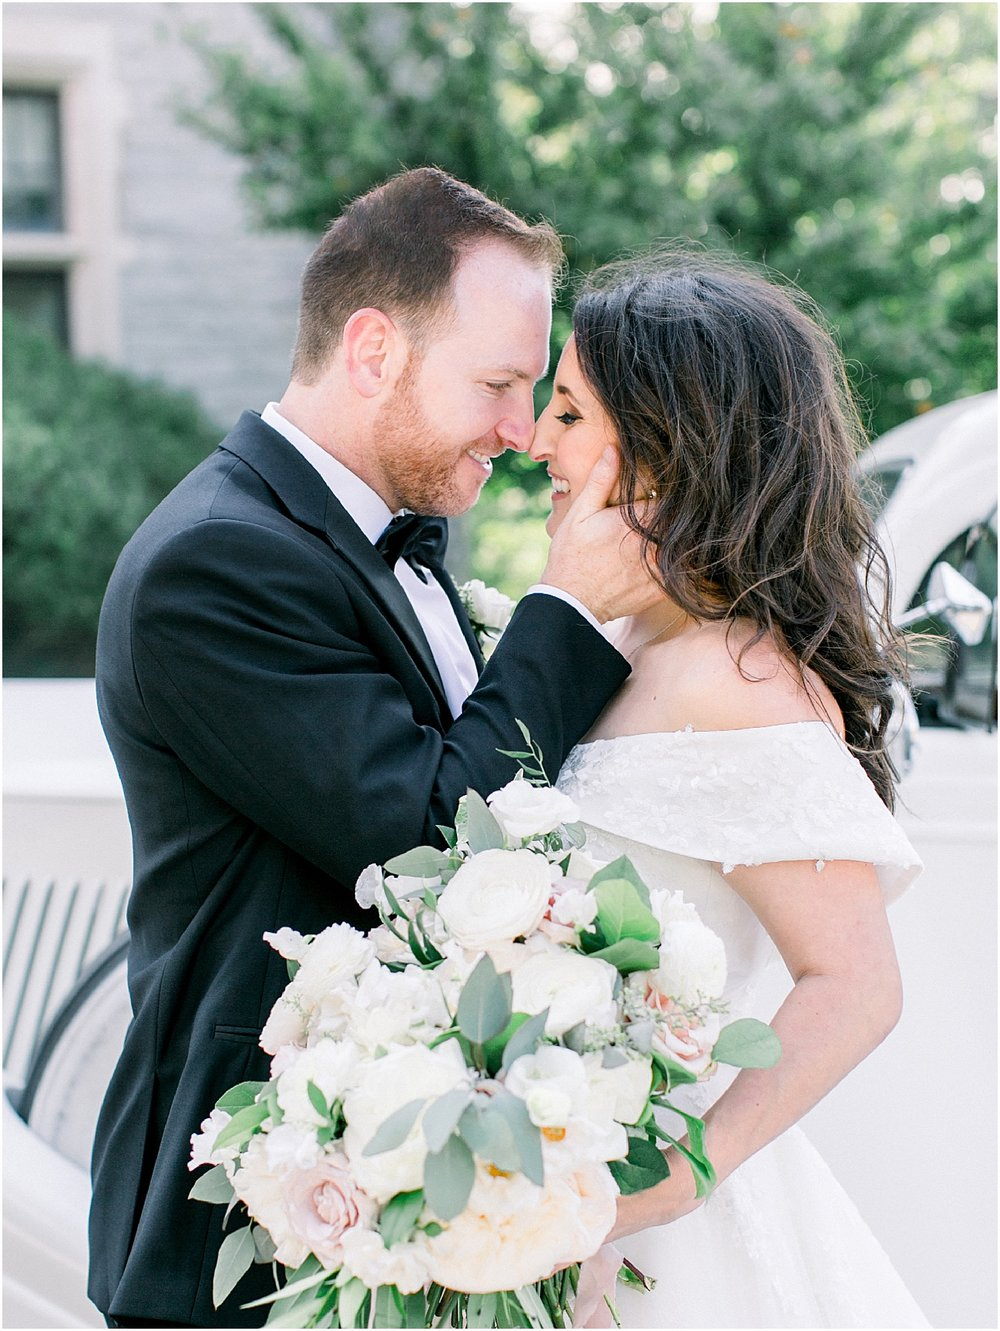 our_wedding_day_troy_NY_emma_willard_fairy_tale_royal_neutral_beauty_and_the_beast_moped_private_estate_cape_cod_boston_wedding_photographer_meredith_jane_photography_chris_kerr_photo_1973.jpg